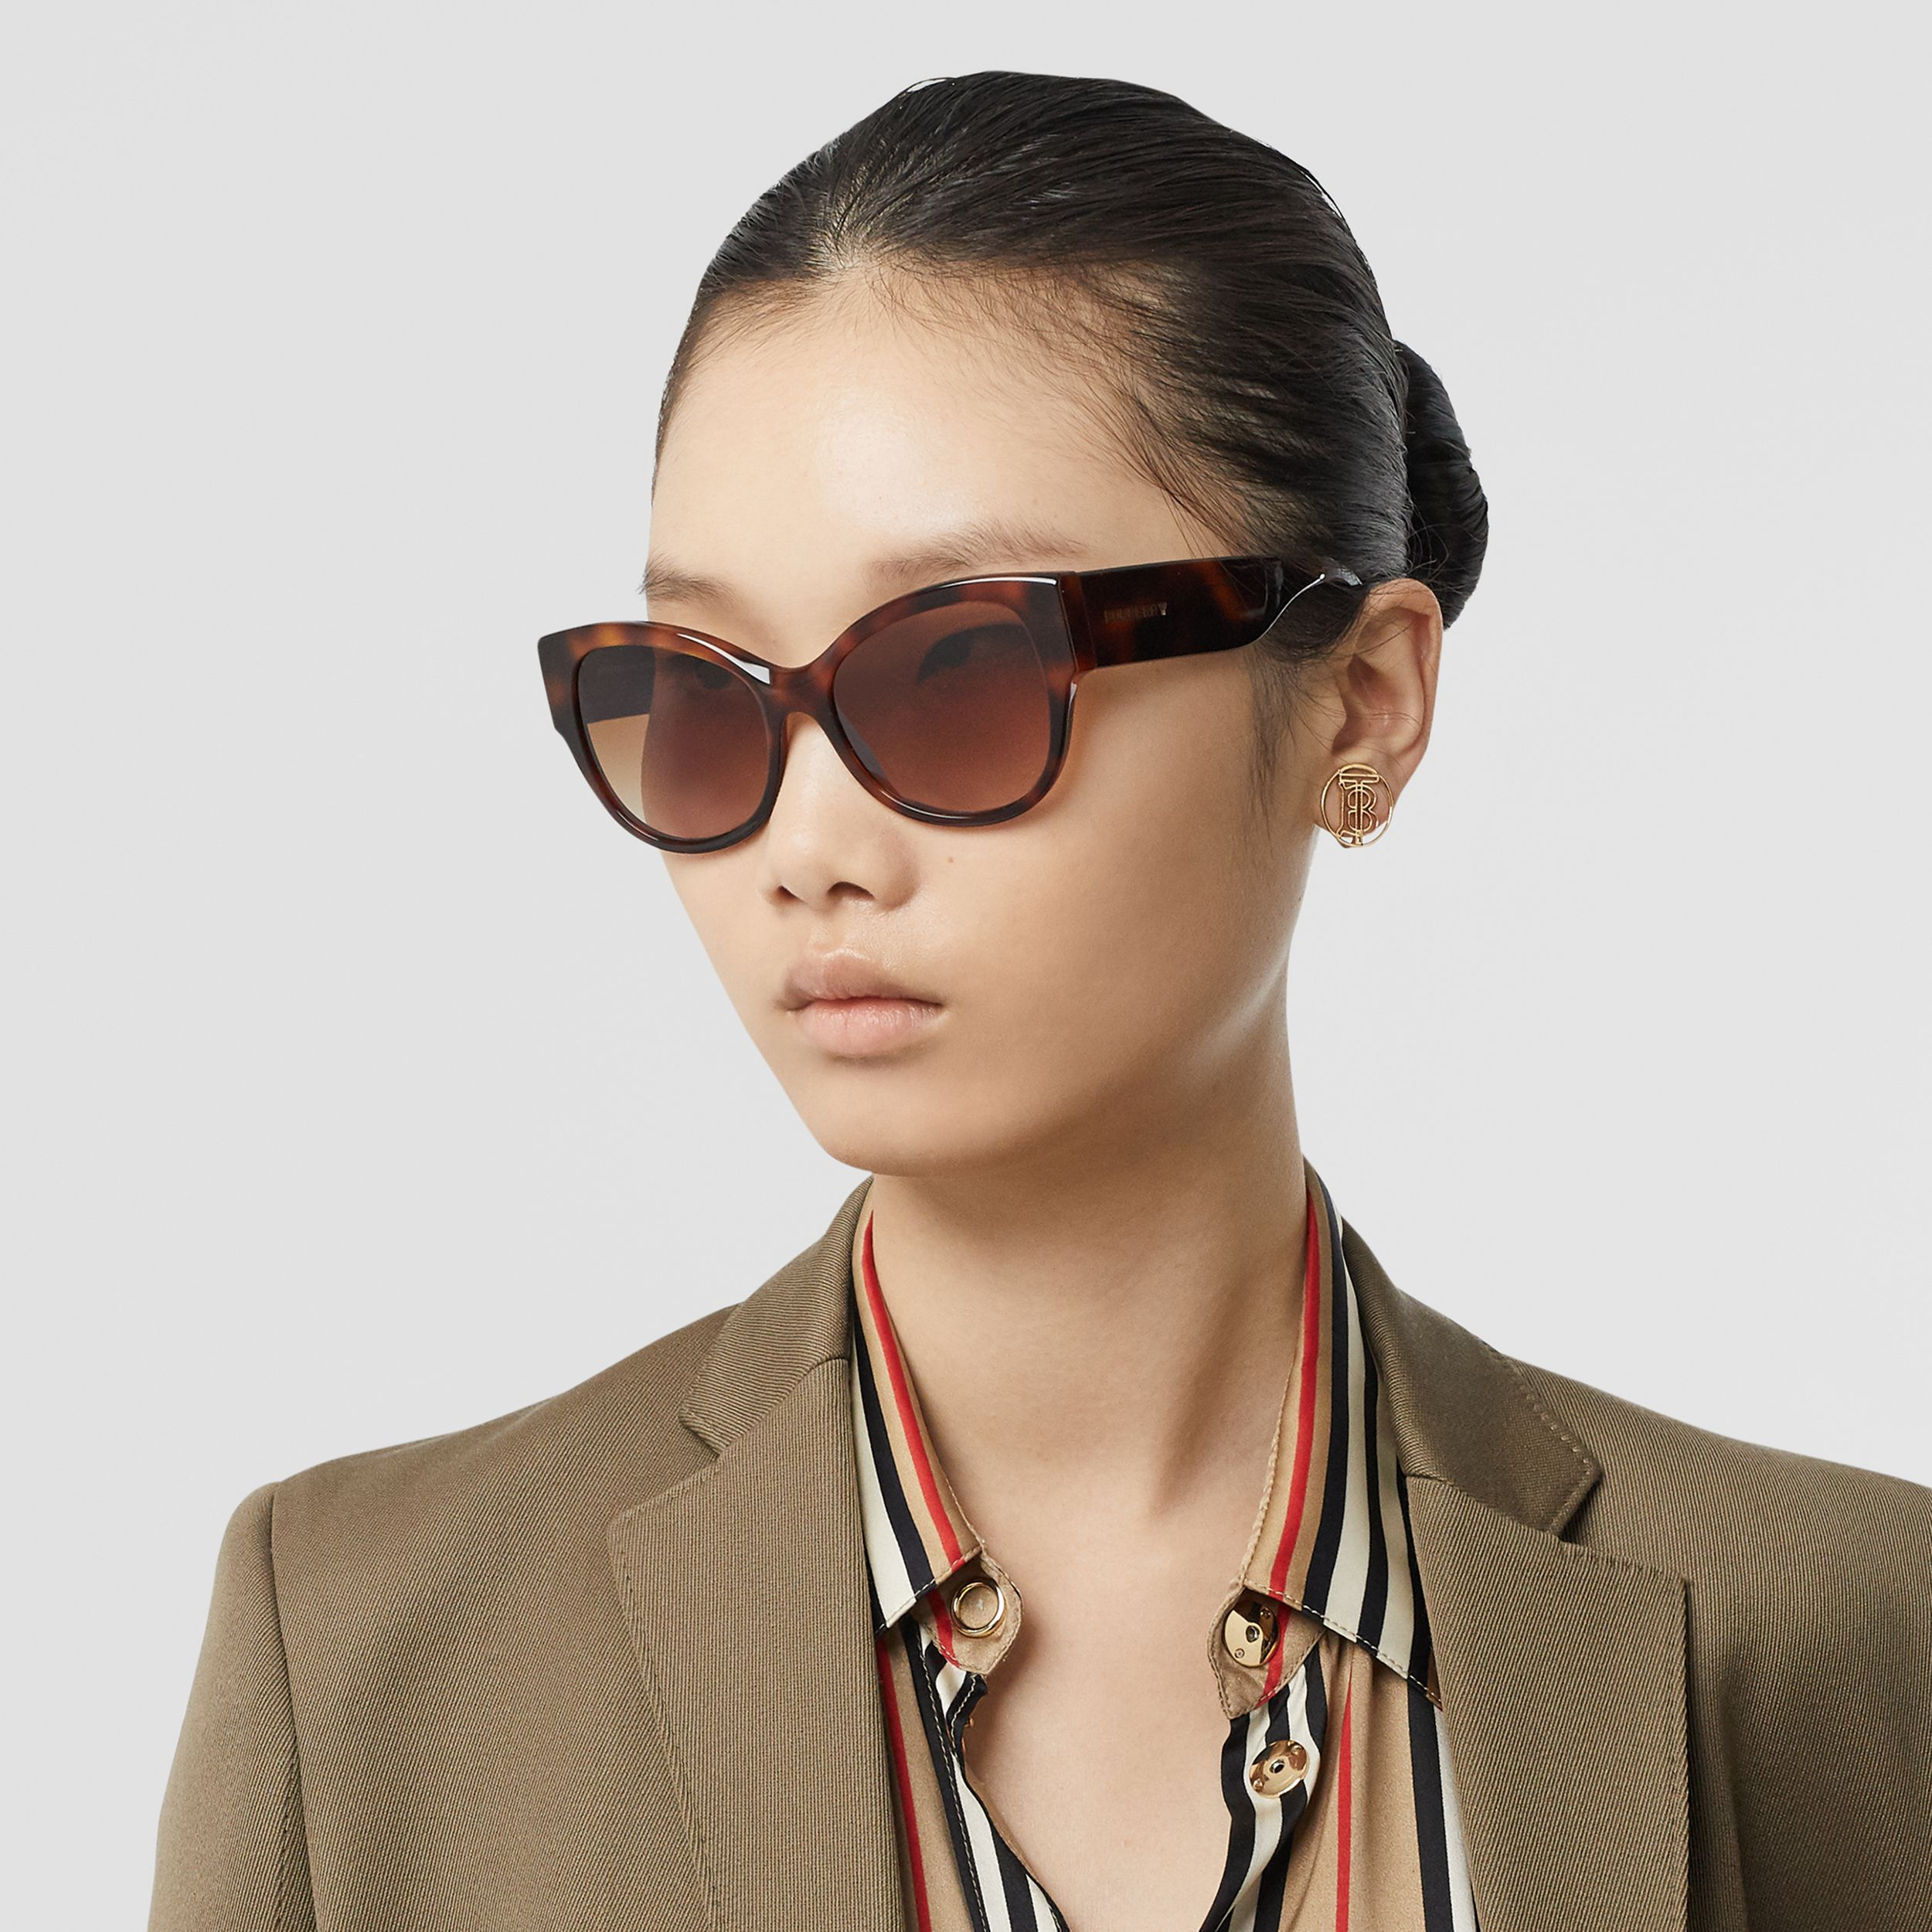 Butterfly Frame Sunglasses in Tortoise Amber - Women | Burberry - 3